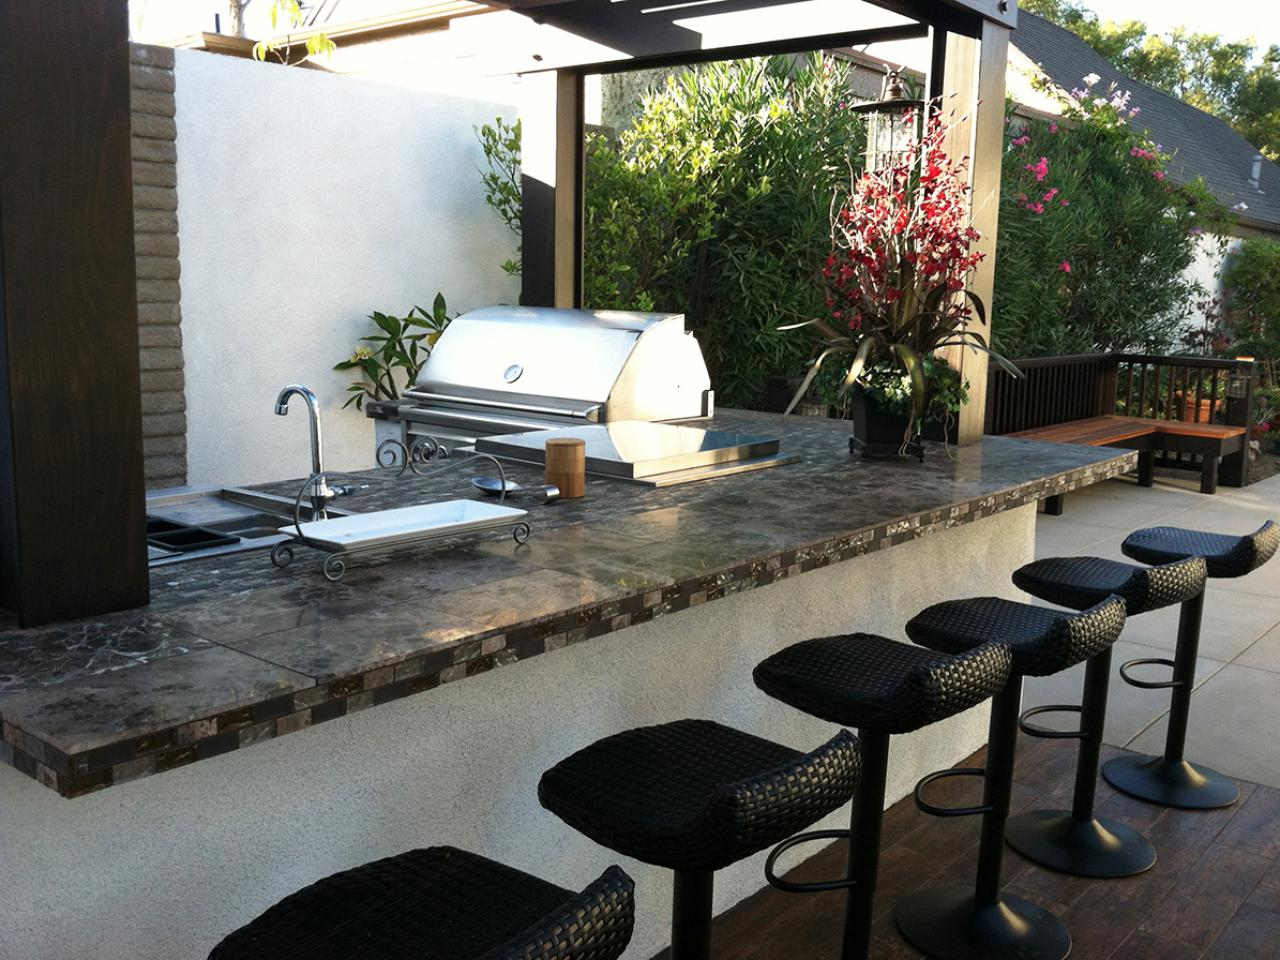 Bar-inspired outdoor kitchen with cute bar stools